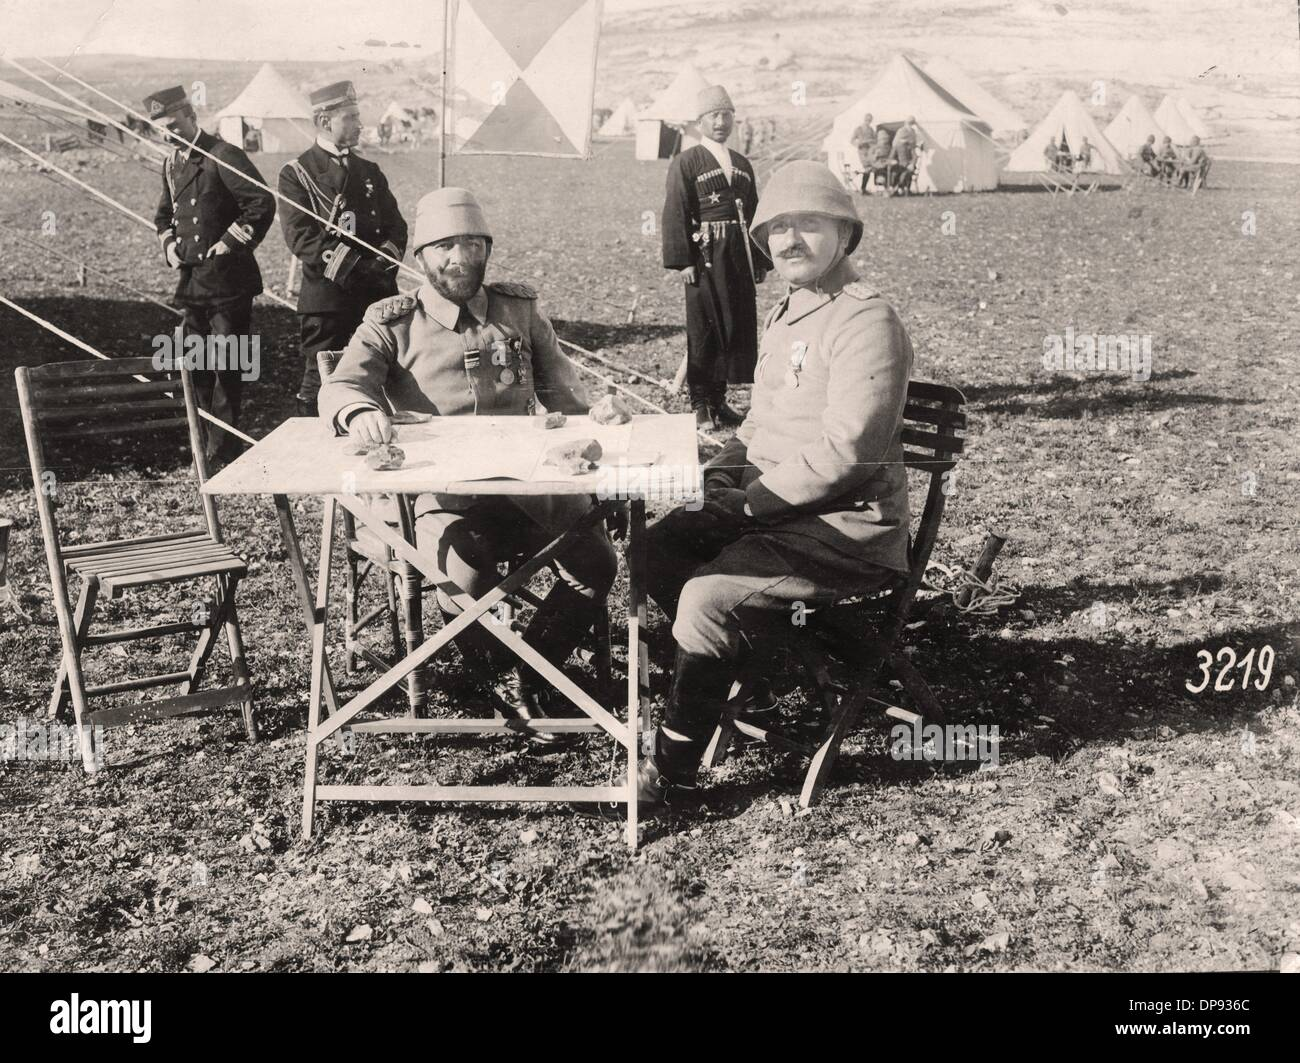 The Turkish General Djemal Pasha (l), commander of the Ottoman army and Governor General of Syria, with his chief of staff Fuad Boy at a command post on the southern front in Palestine. Date unknown. The Sinai and Palestine Campaign was a secondary theatre of war between the Ottoman Empire and Great Britain during World War I (1915-1918). The Ottoman Empire, as a an ally of the Central Powers, was supported by German (Asia Corps) and Austro-Hungarian troops in Palestine. Photo: Berliner Verlag/Archiv - Stock Image